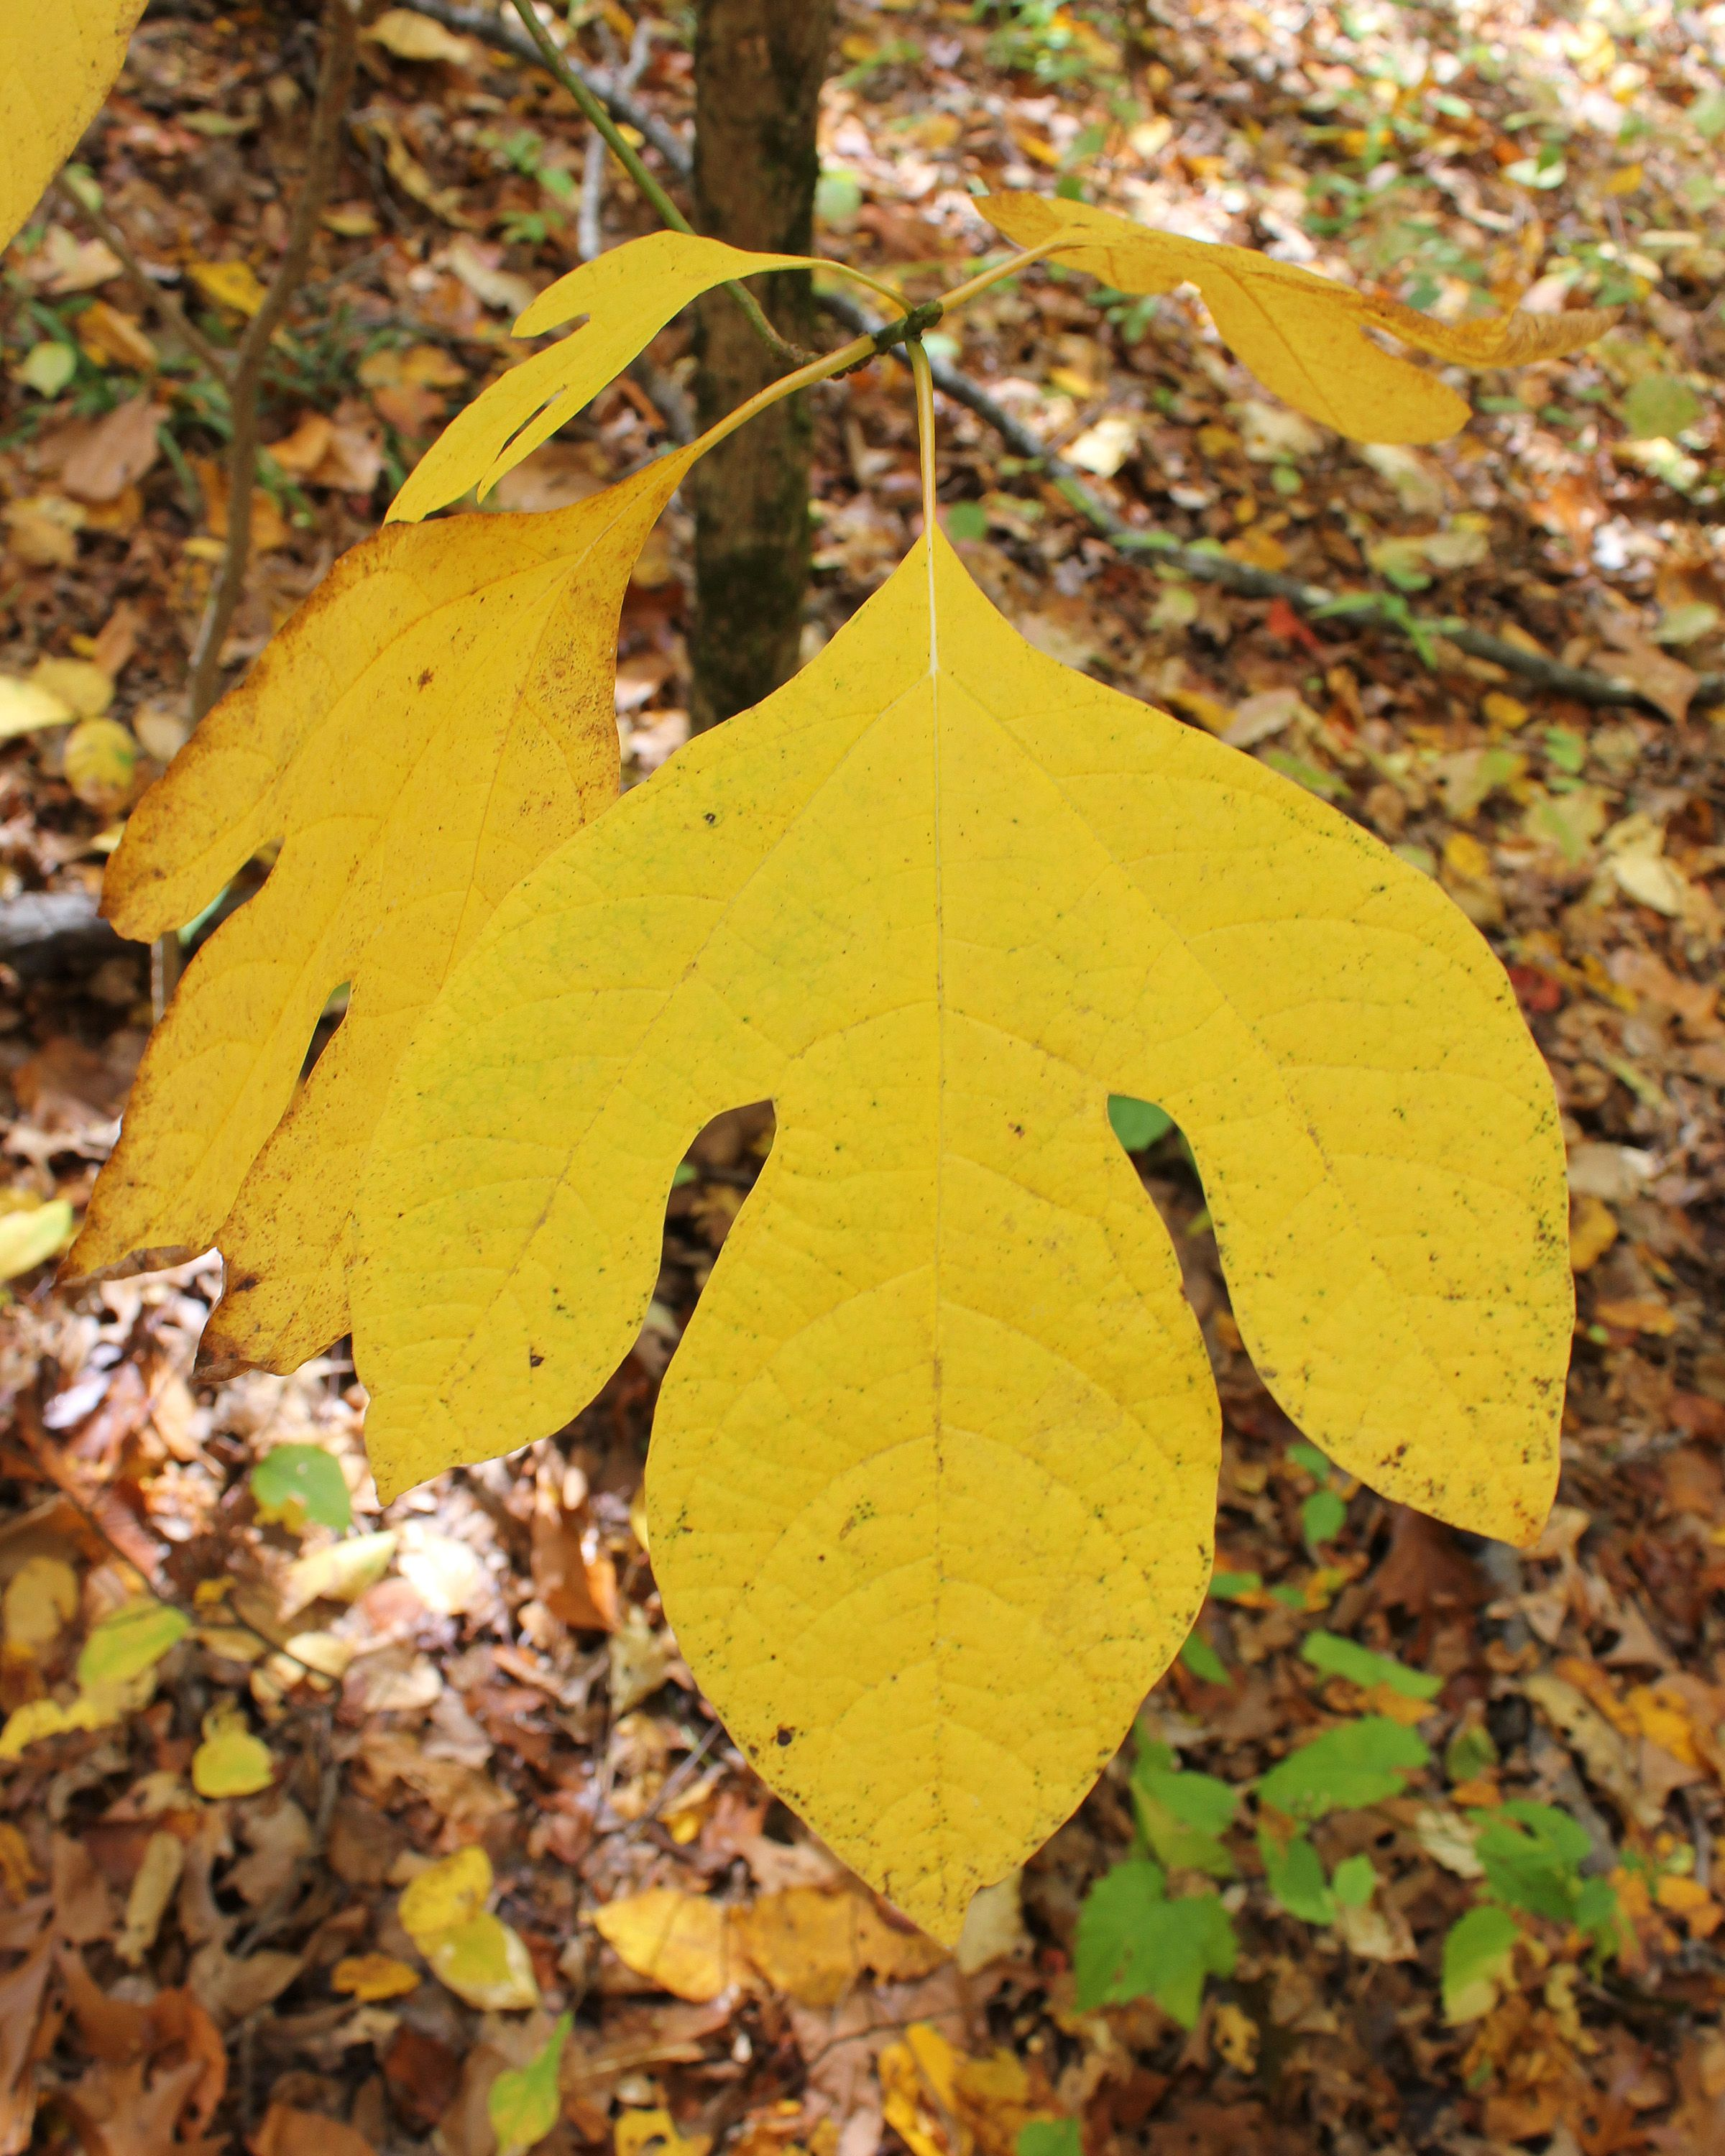 A flat, yellow leaf comprised of three equally sized lobes